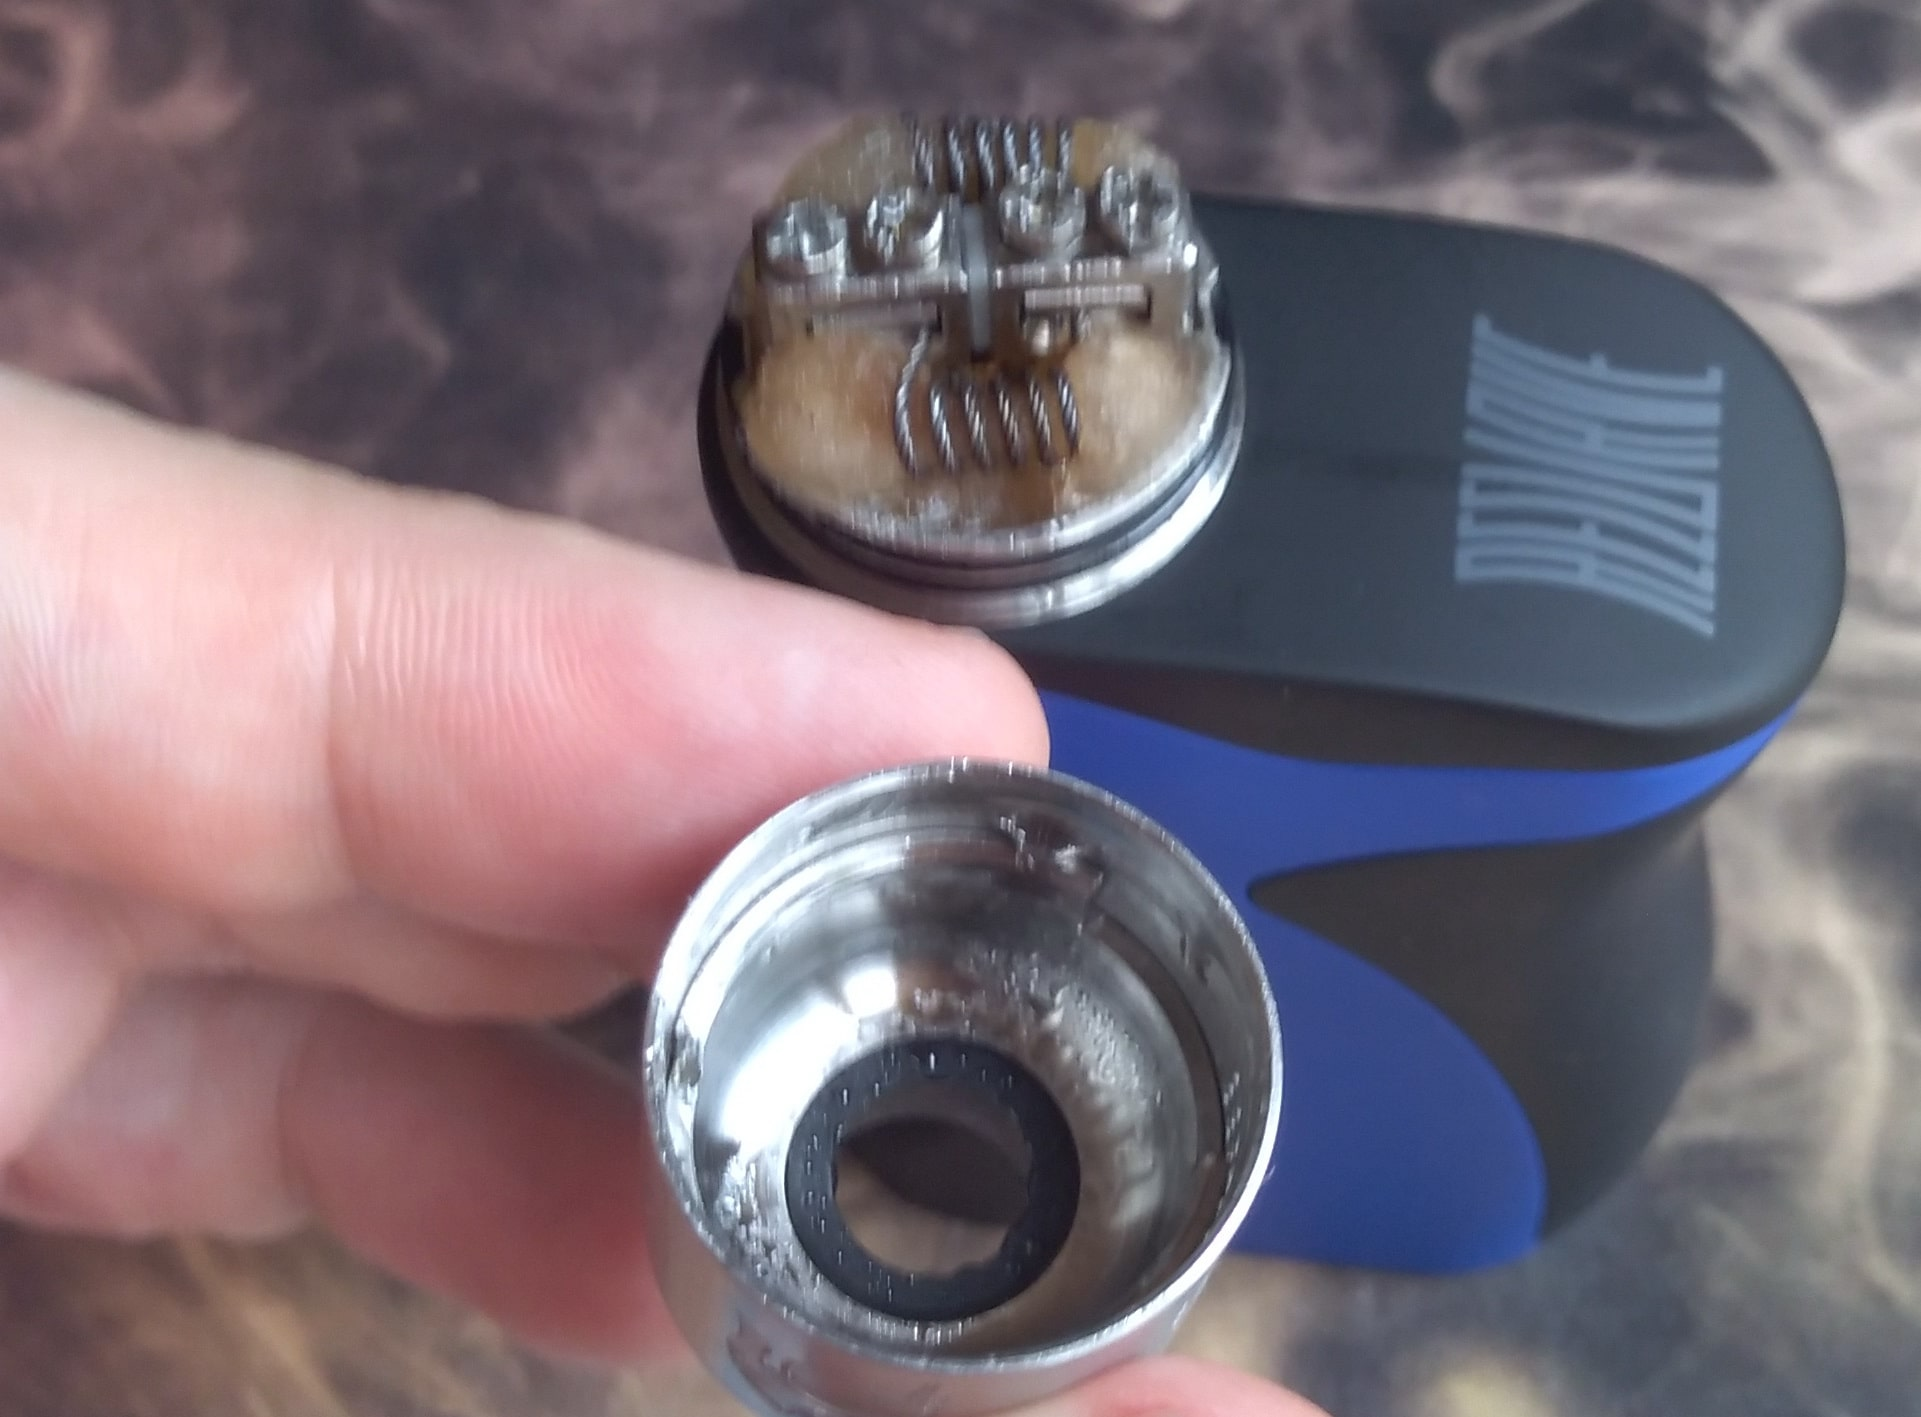 Wotofo Warrior BF RDA conical chamber and condensation after 5ml of juice